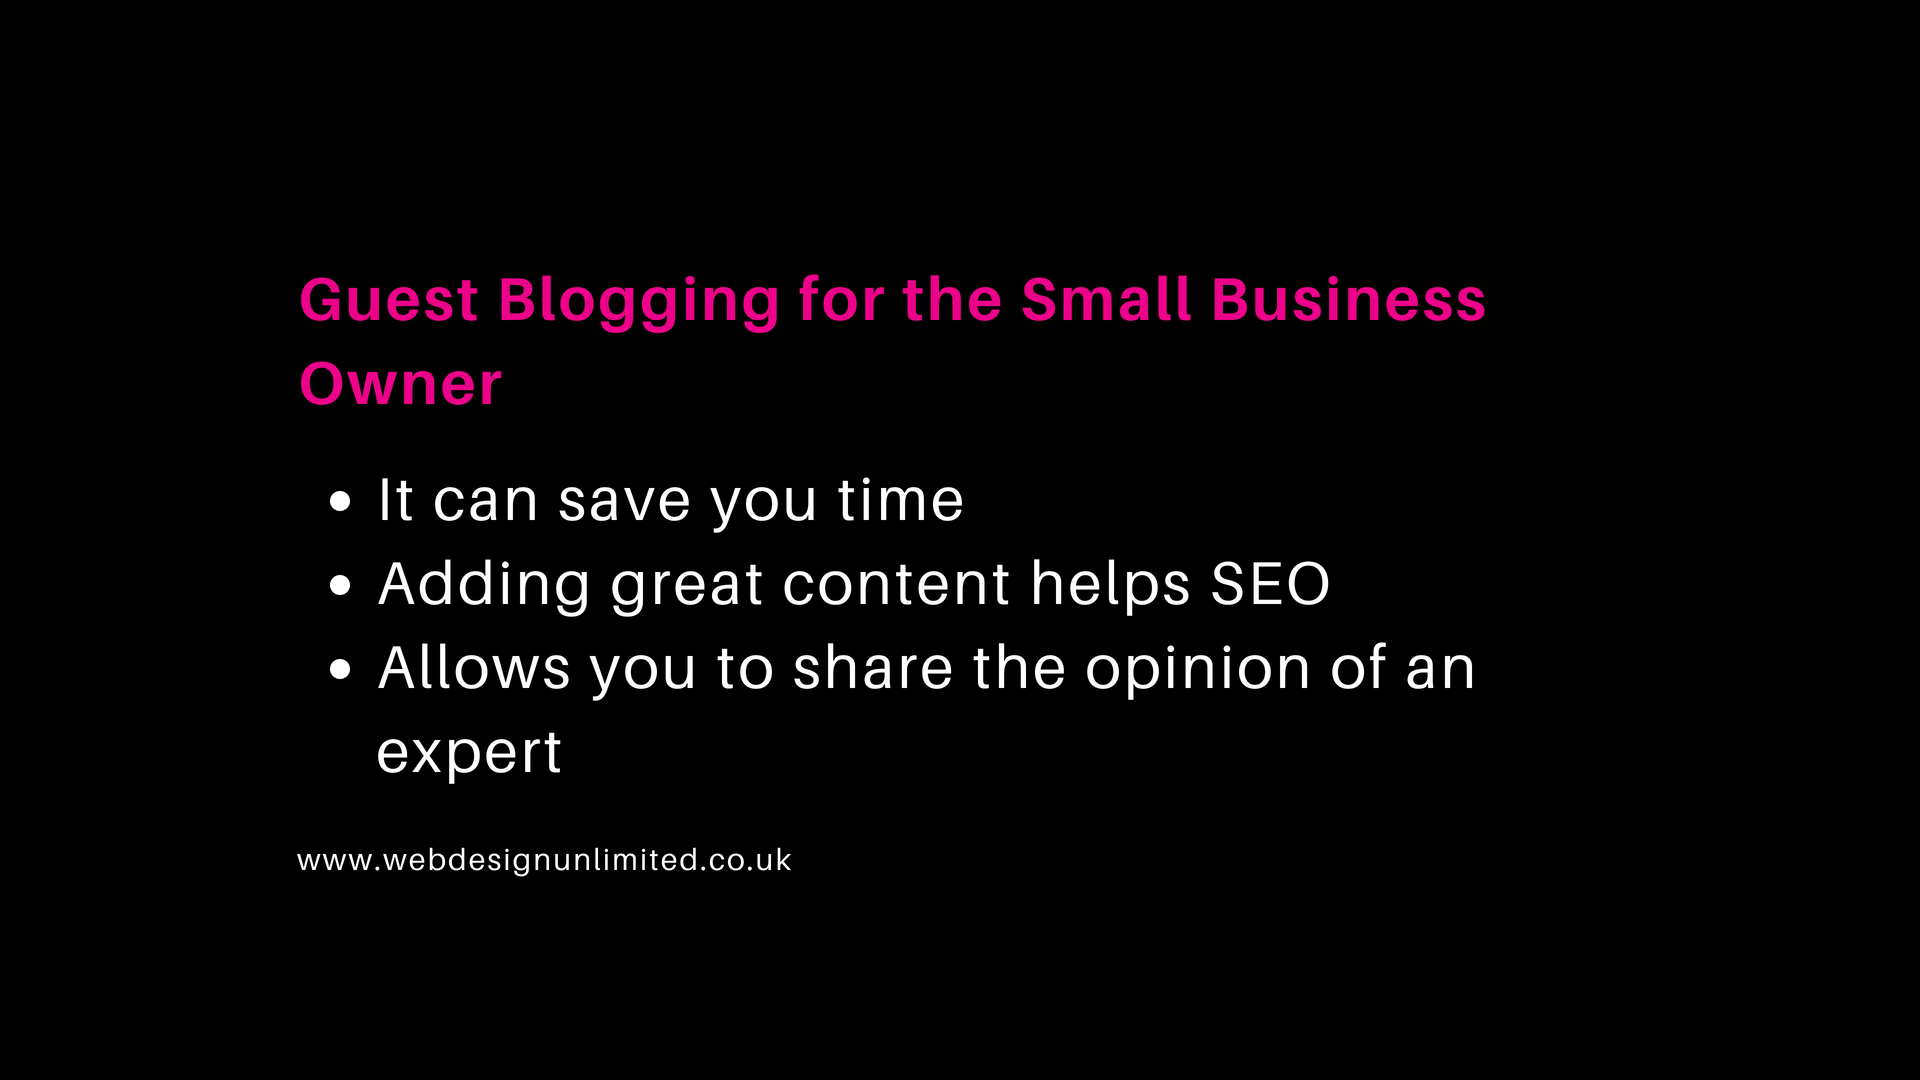 Guest blogging and the benefits to a small business website